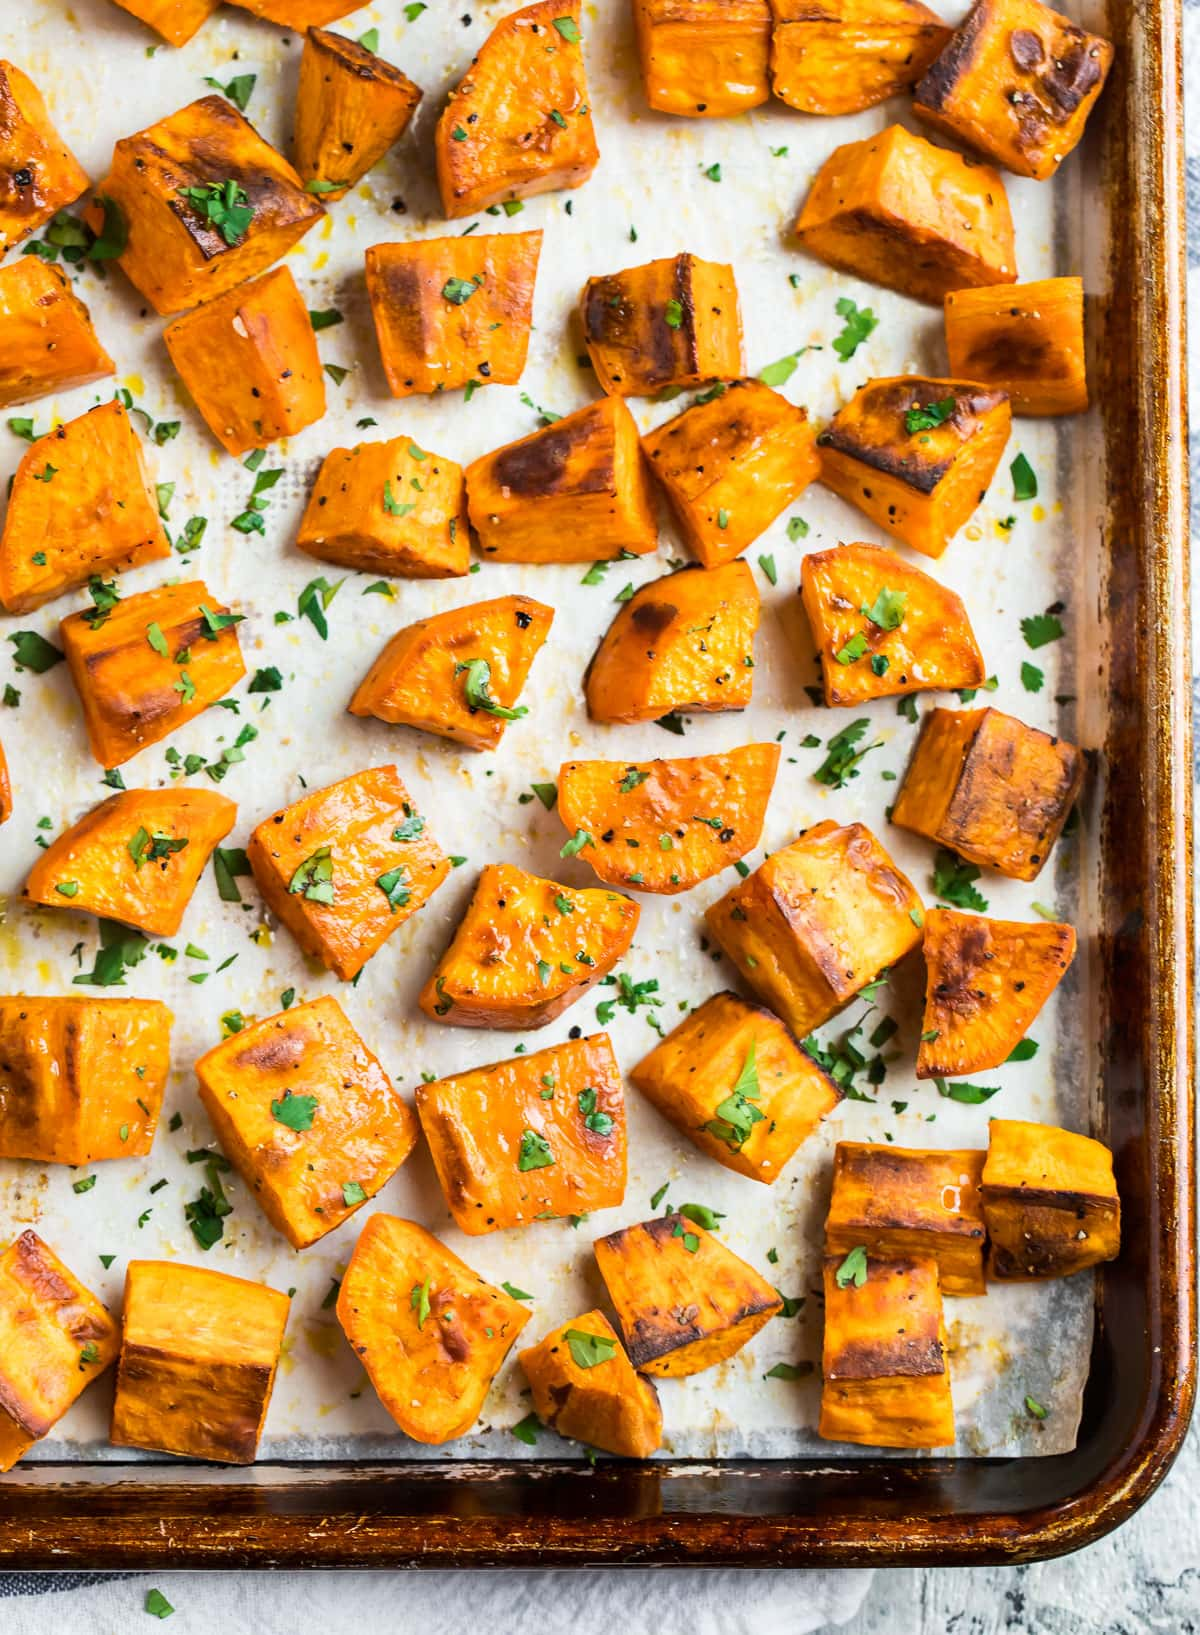 Pieces of roasted sweet potatoes